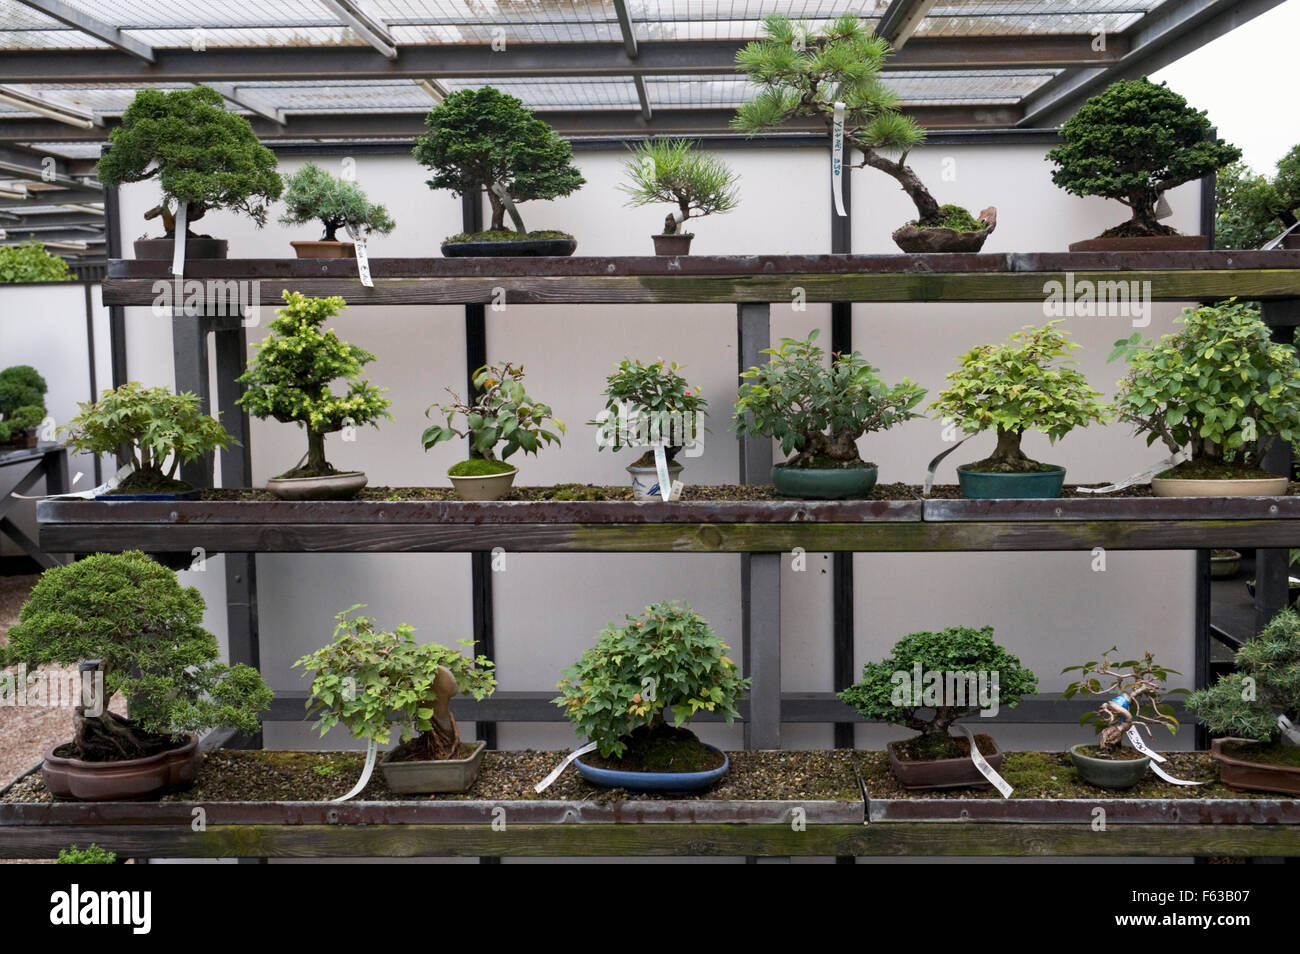 display of small bonsai trees for sale stock photo 89814263 alamy. Black Bedroom Furniture Sets. Home Design Ideas